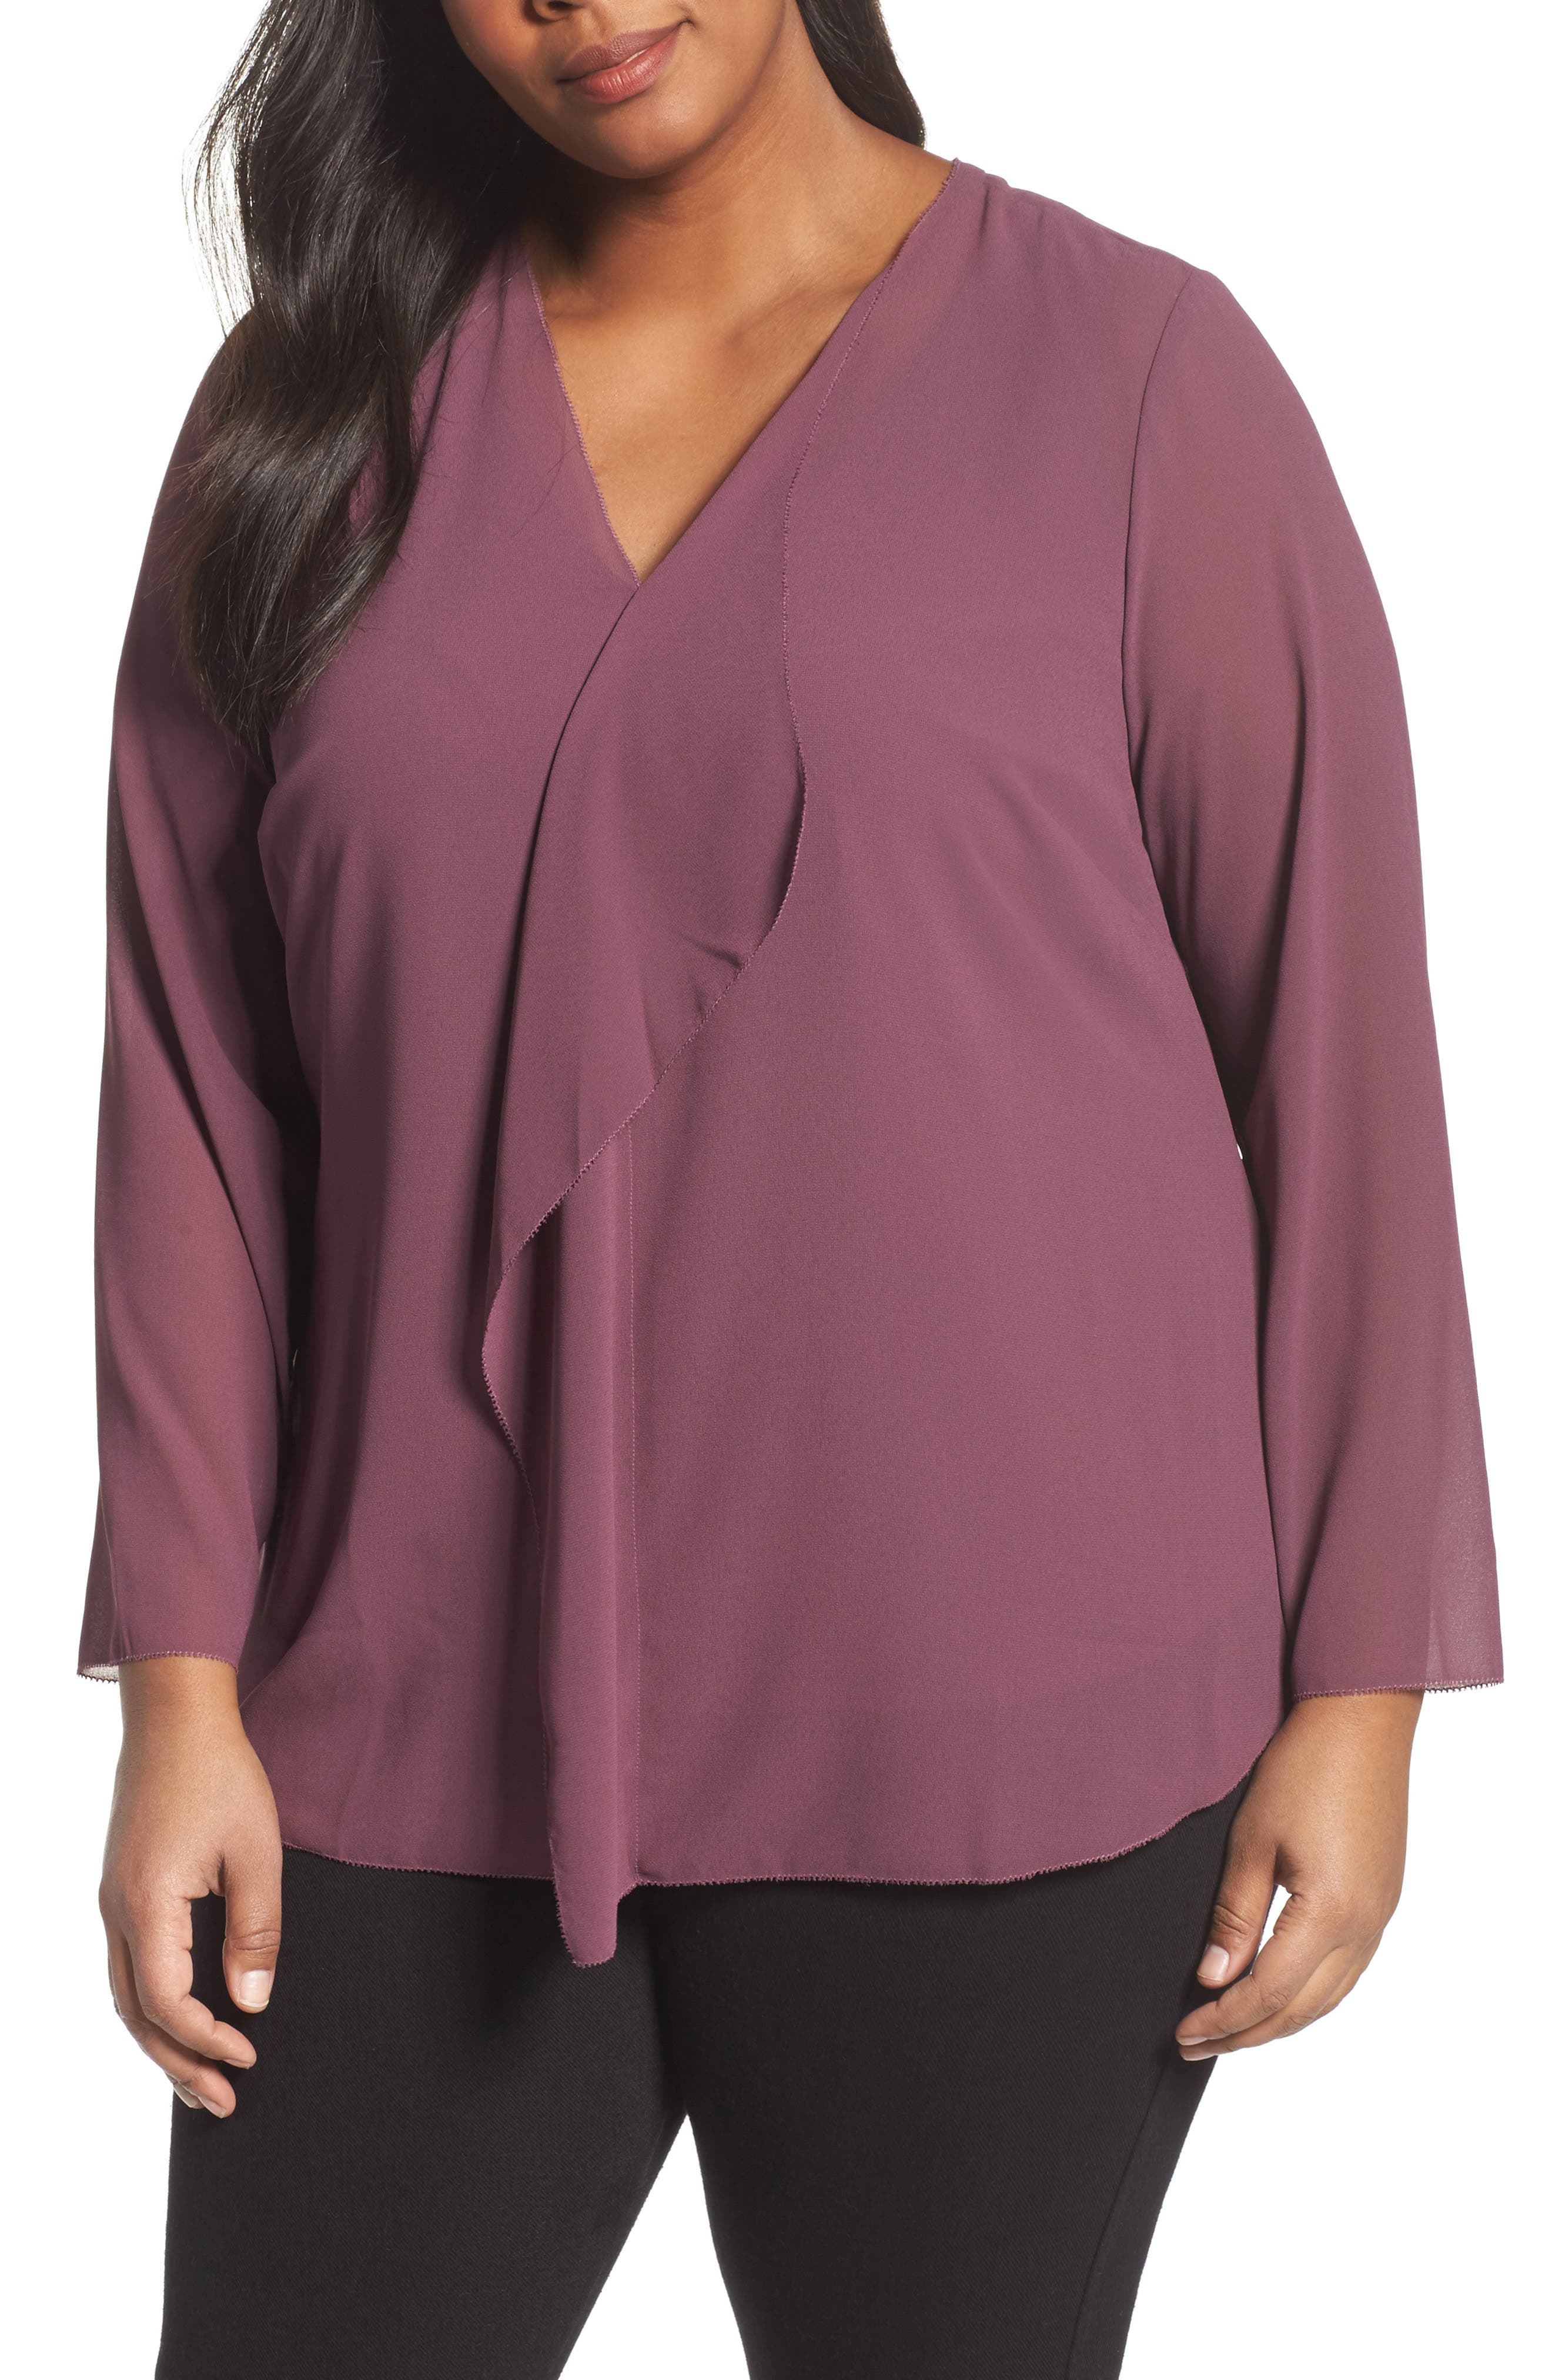 Alternate Image 1 Selected - Foxcroft Ashleigh Chiffon Top (Plus Size)